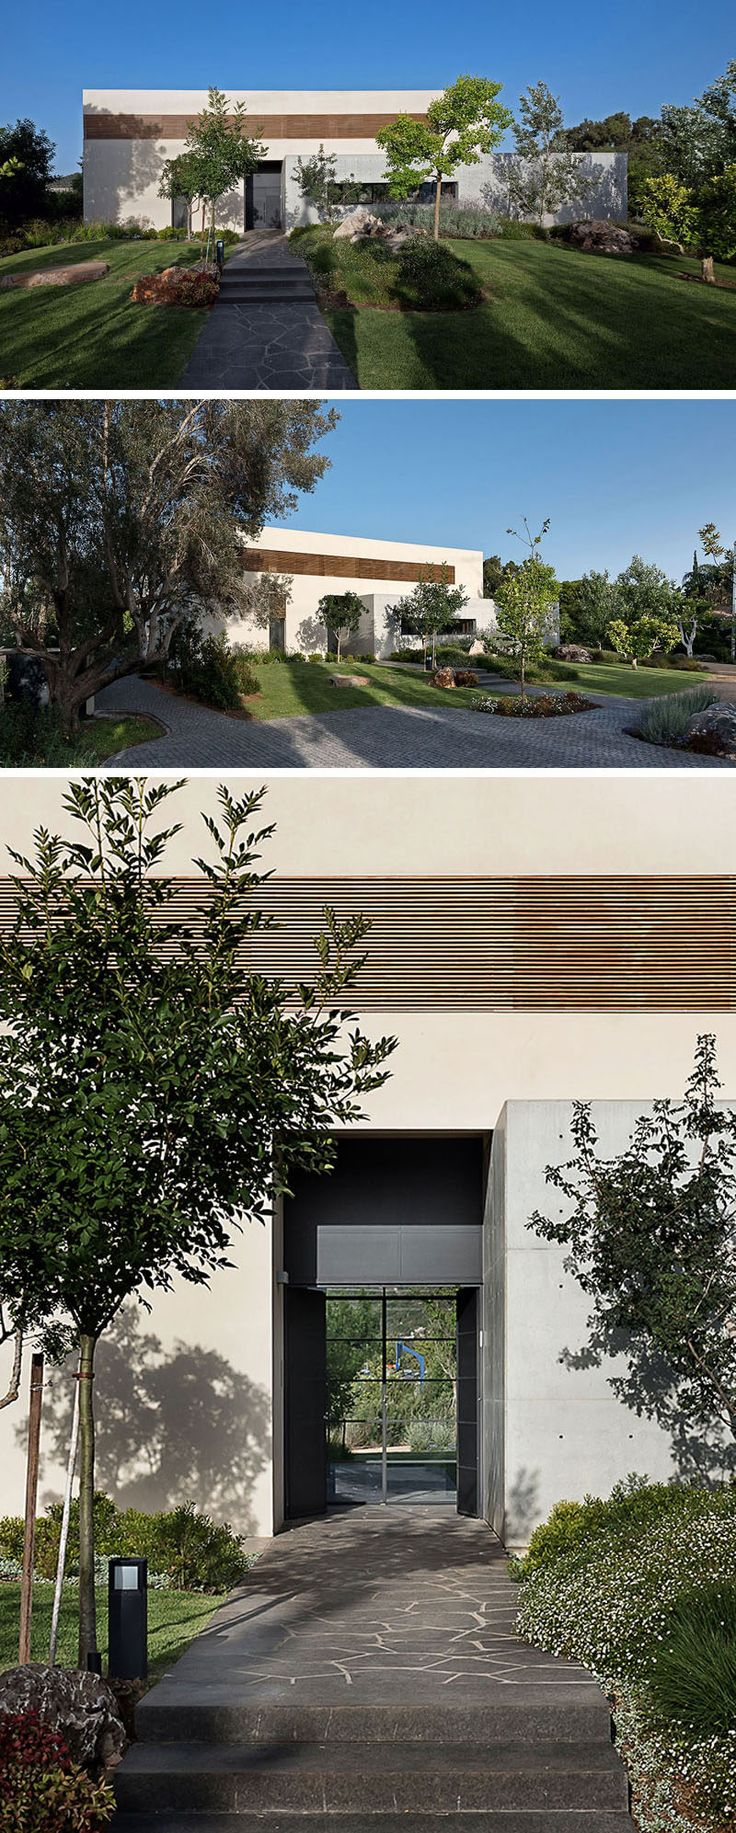 At the front of this modern house, a stone path leads through the garden to the front door. #Landscaping #GardenPath #FrontDoor